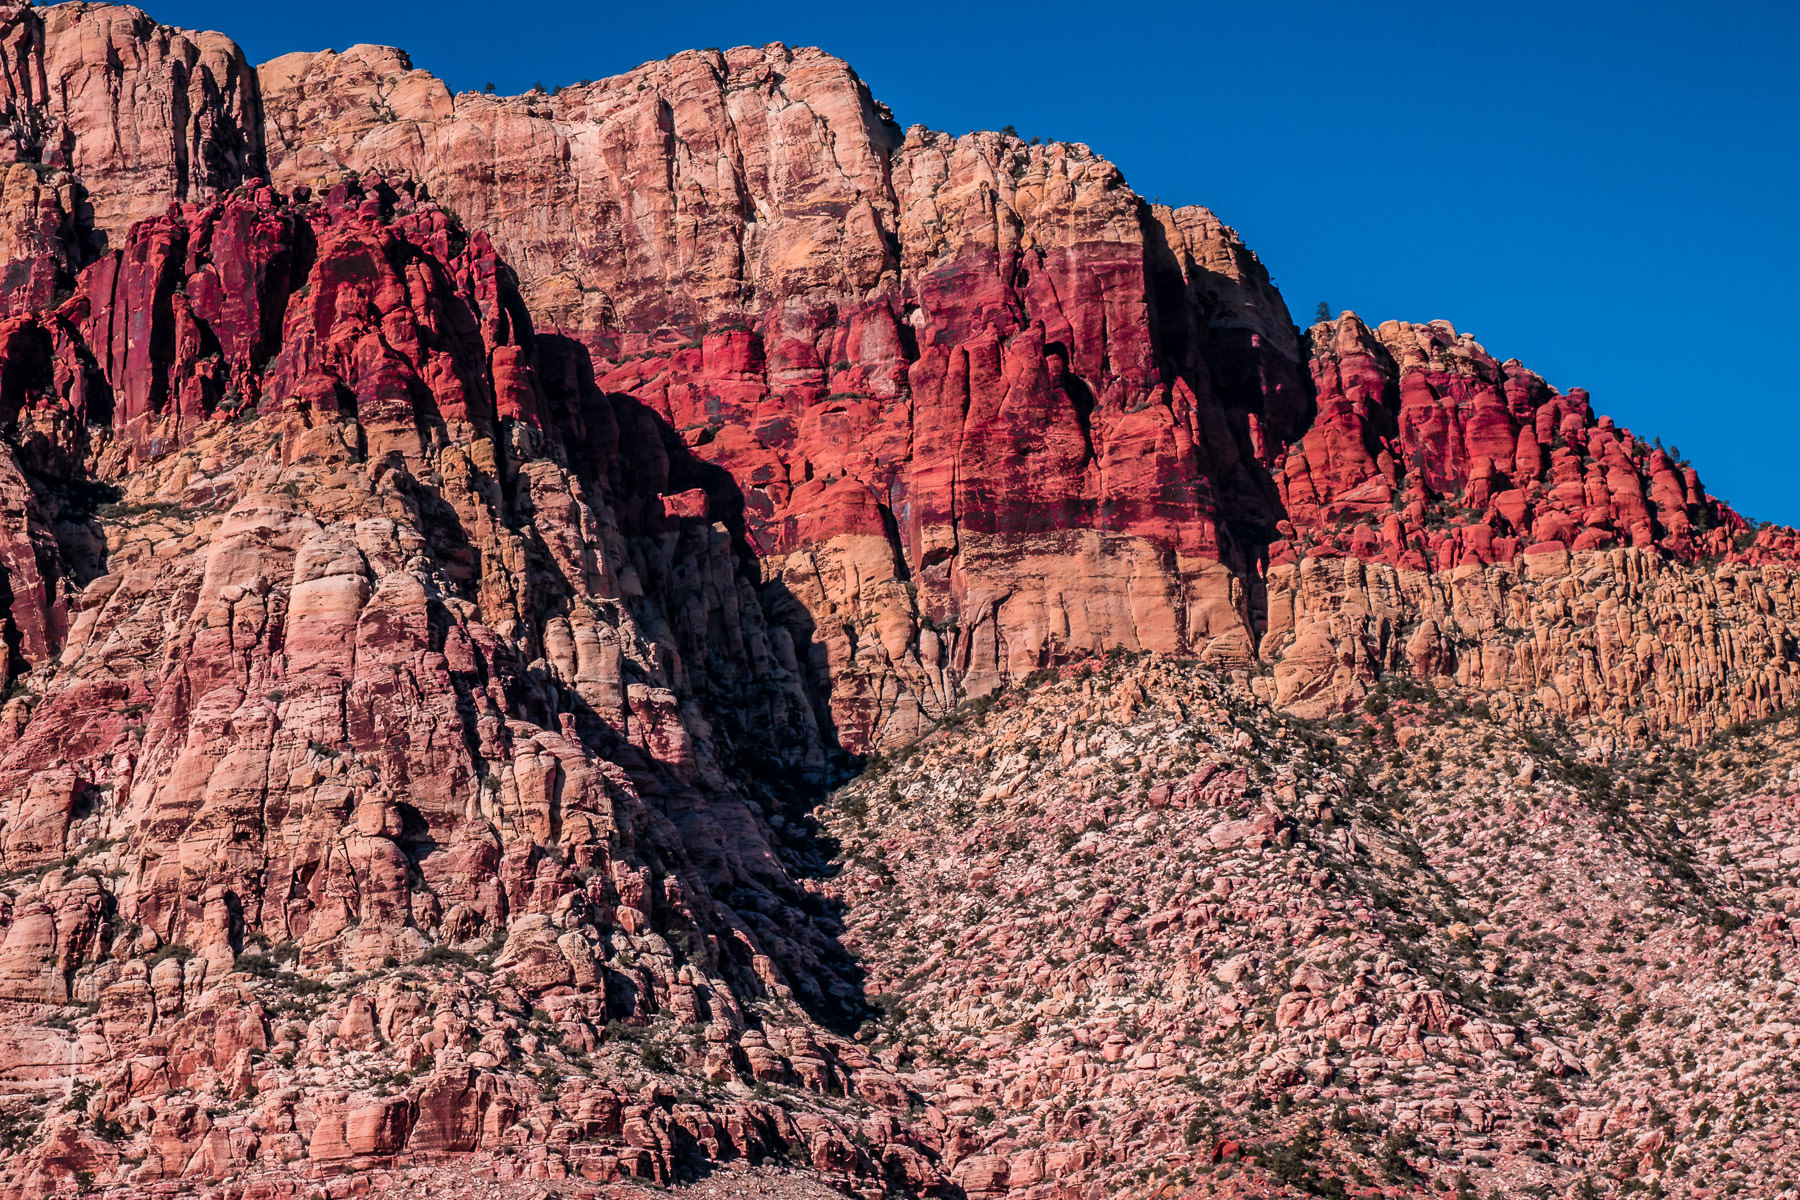 Detail of the layers of rock in a geologic formation at Red Rock Canyon, Nevada.